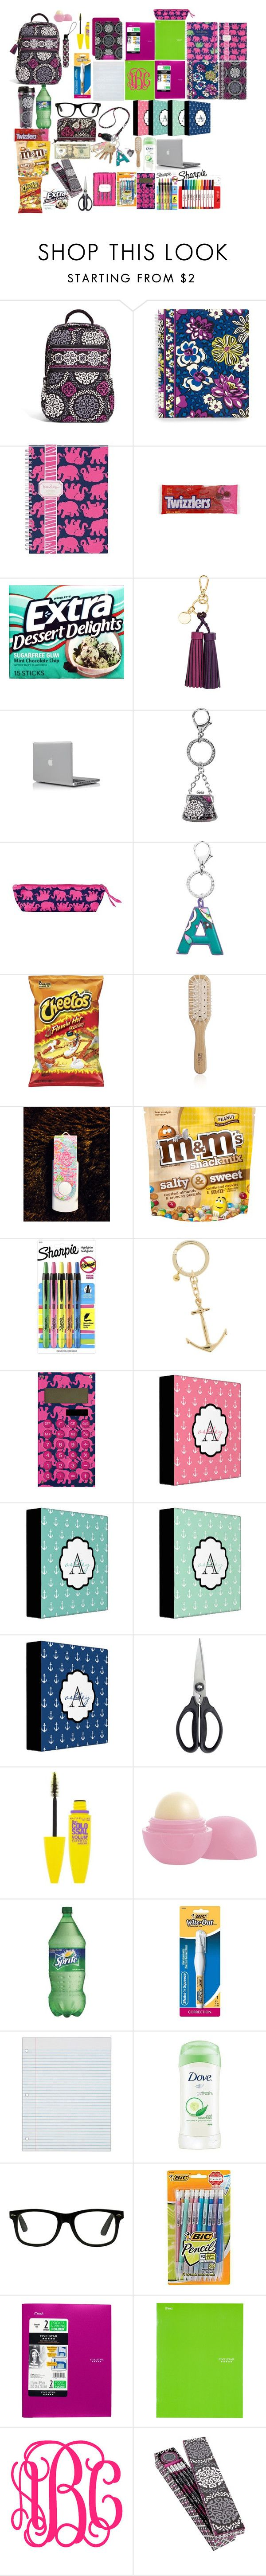 back to school preppy school supplies for teens by turnerjazmyne on Polyvore featuring Vera Bradley, J.Crew, H&M, Eos, Dove, Philip Kingsley, OXO, Lilly Pulitzer, Mead and Regatta